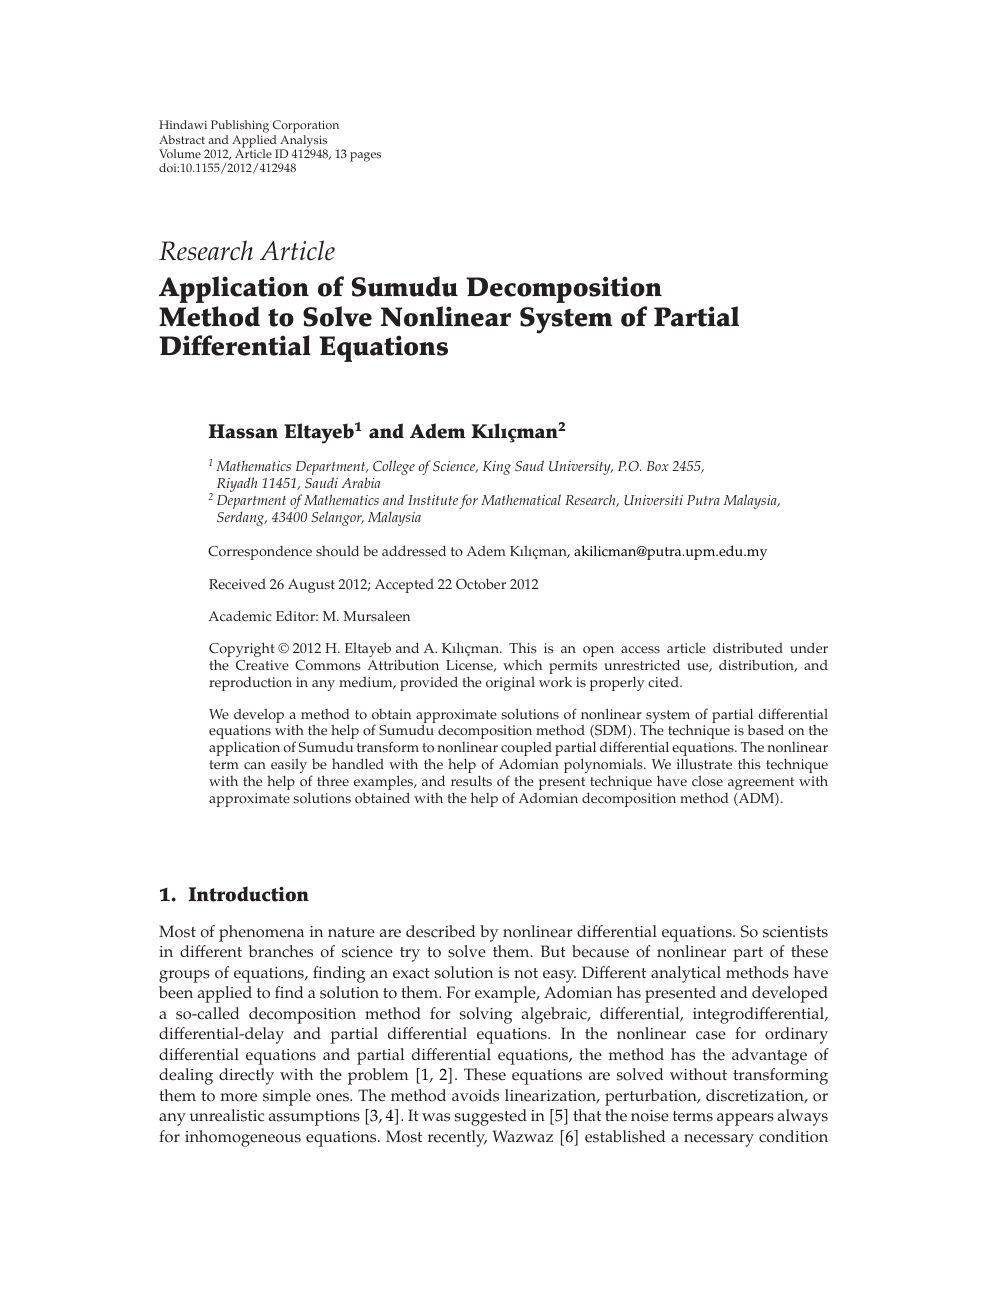 Application of Sumudu Decomposition Method to Solve